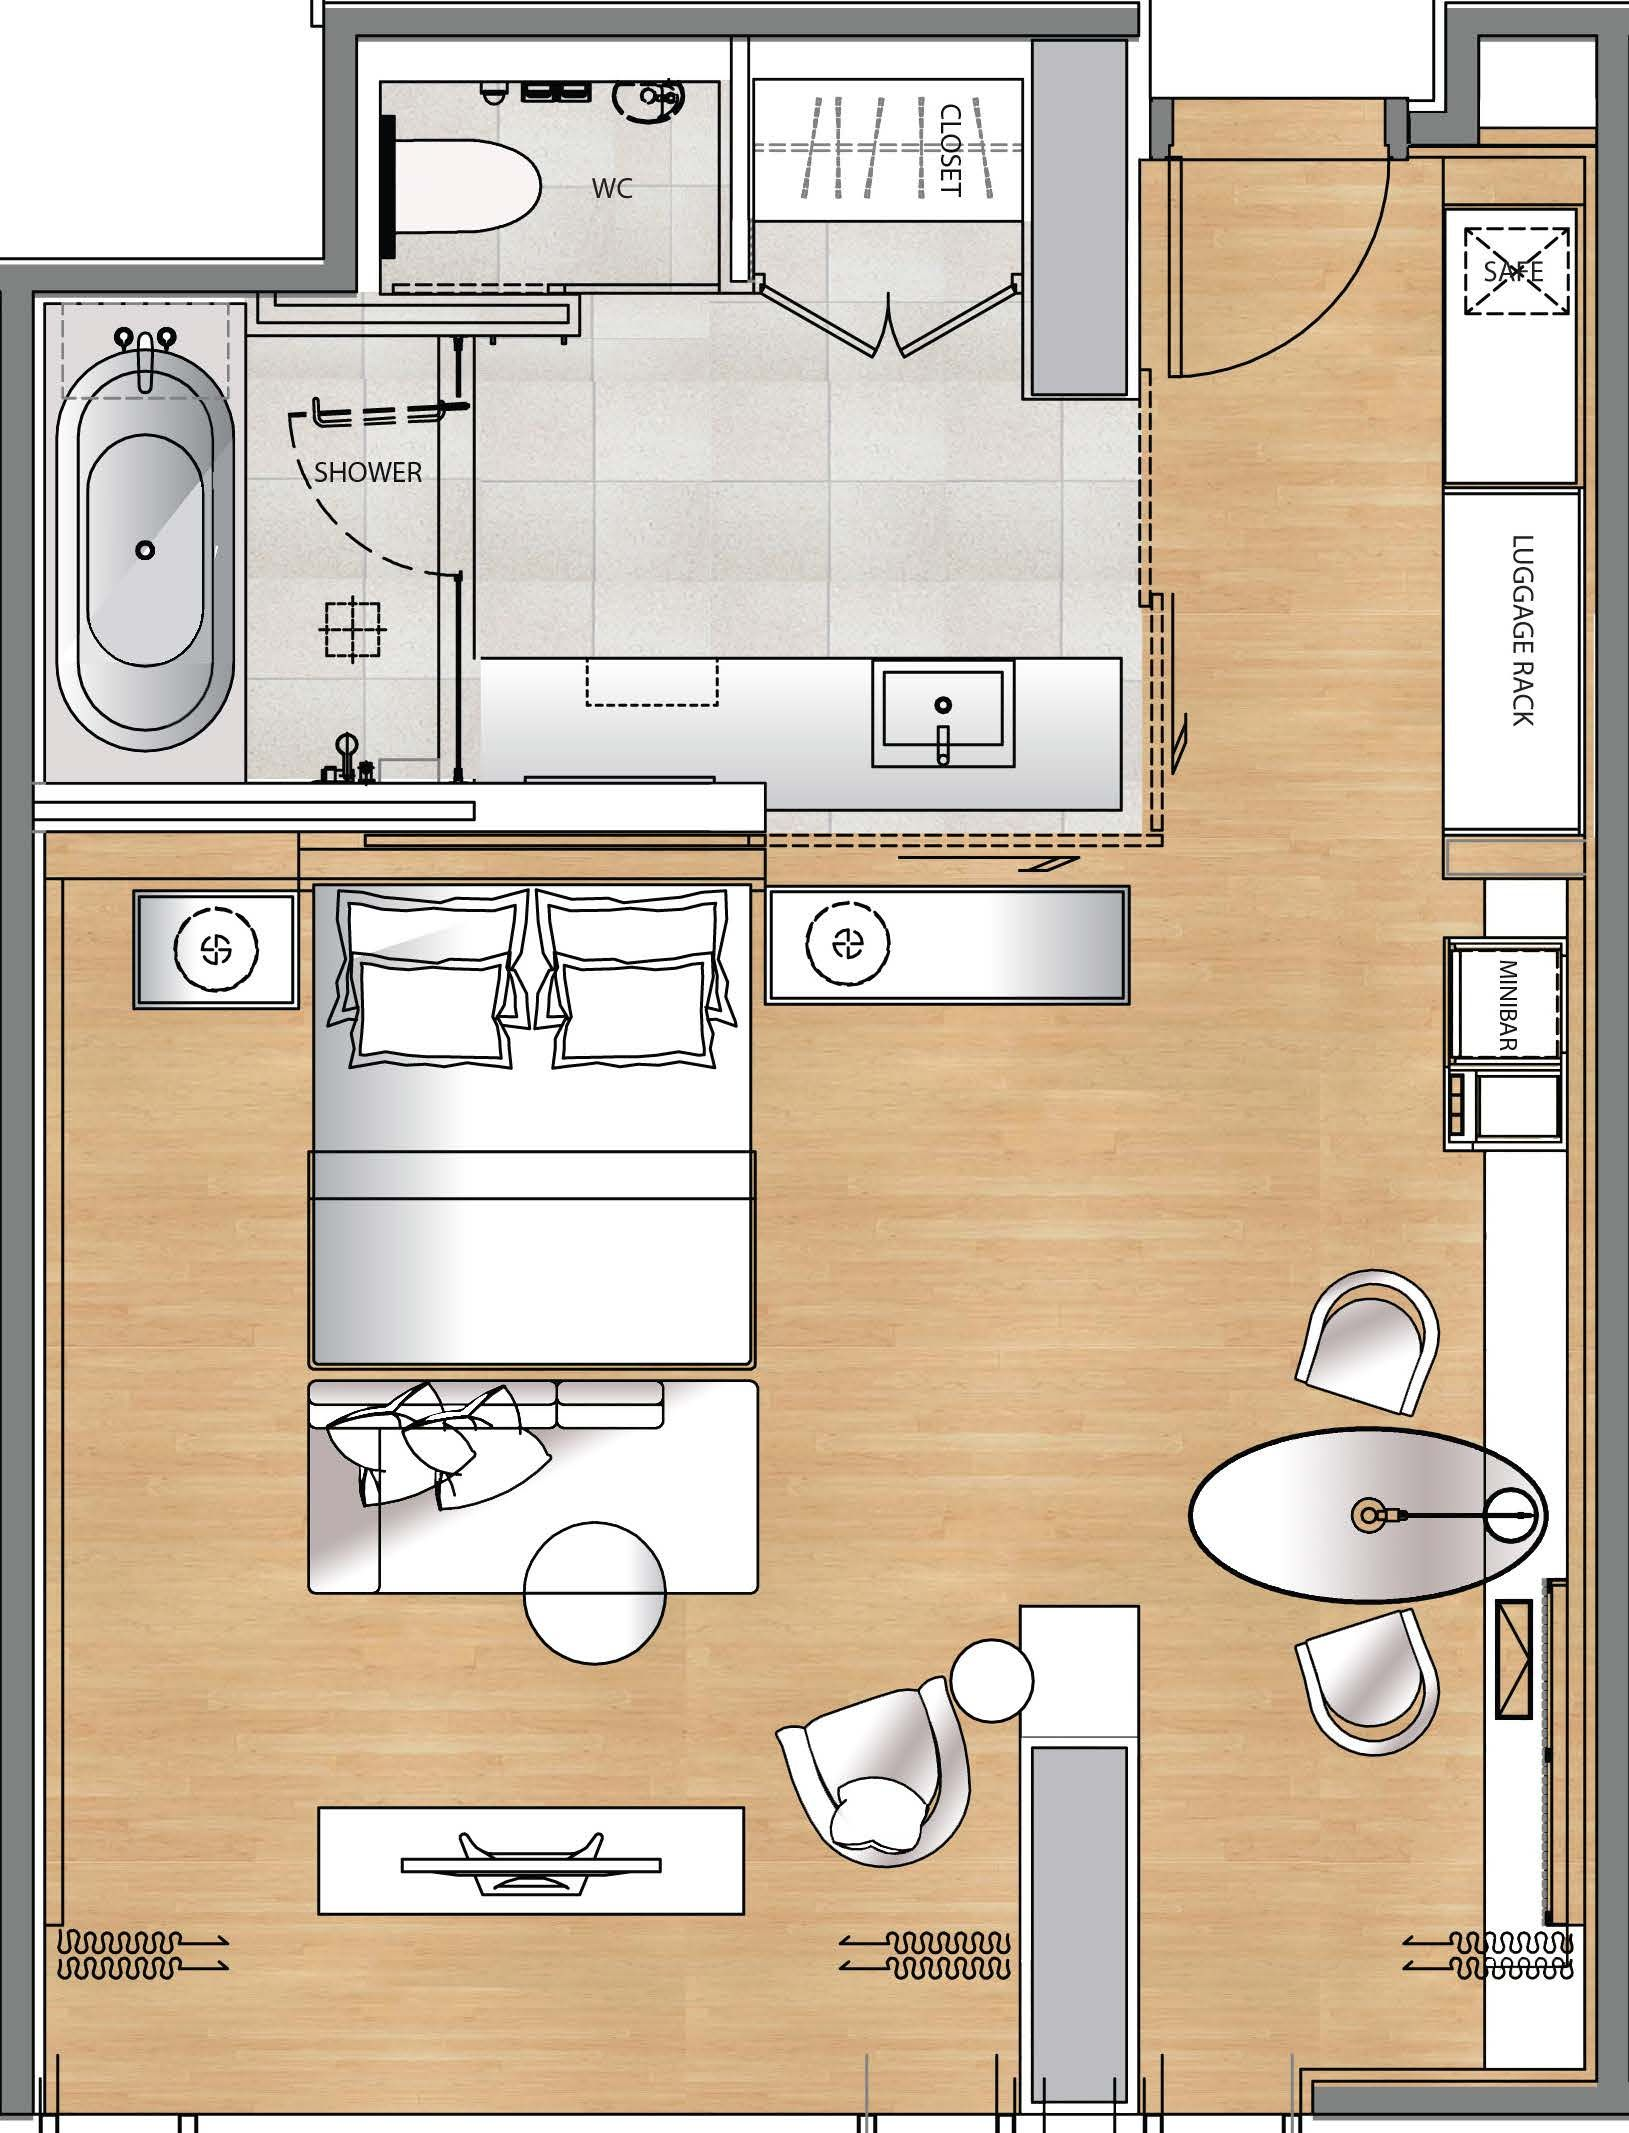 Hotel gym floor plan google search hotel rooms for Bedroom layout design